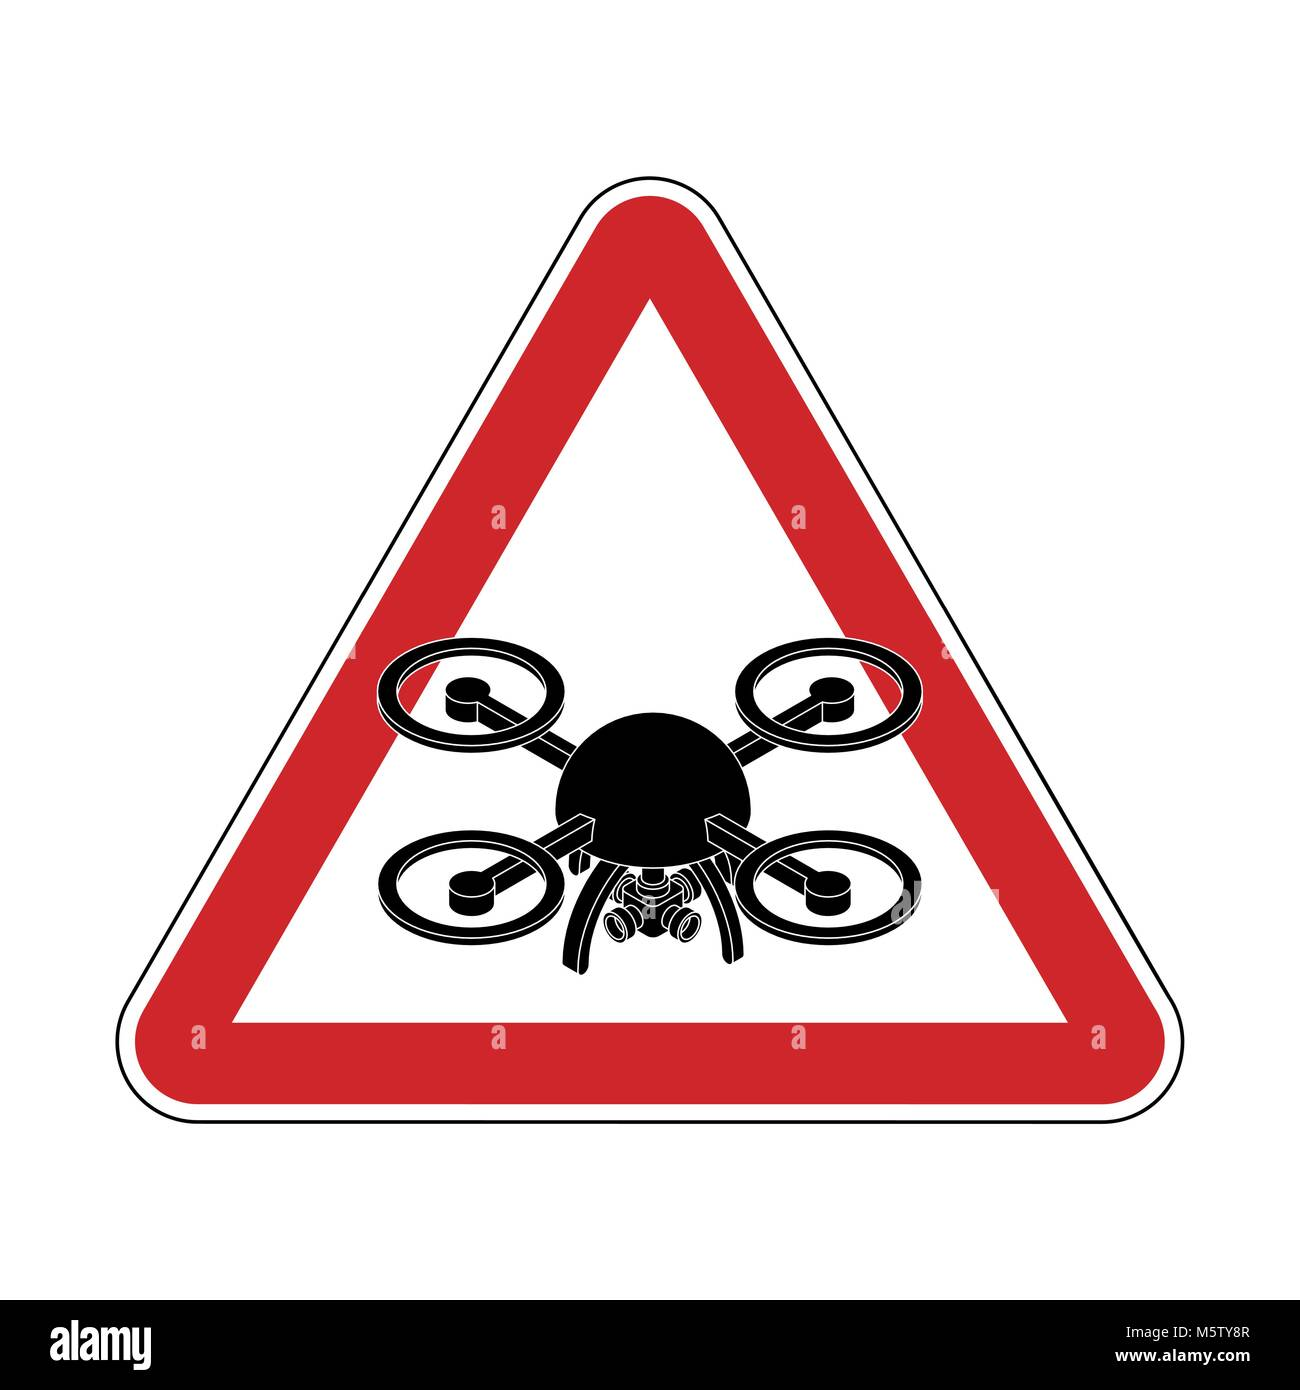 Attention quadrocopter. Danger of aerial photography. Red road sign - Stock Vector